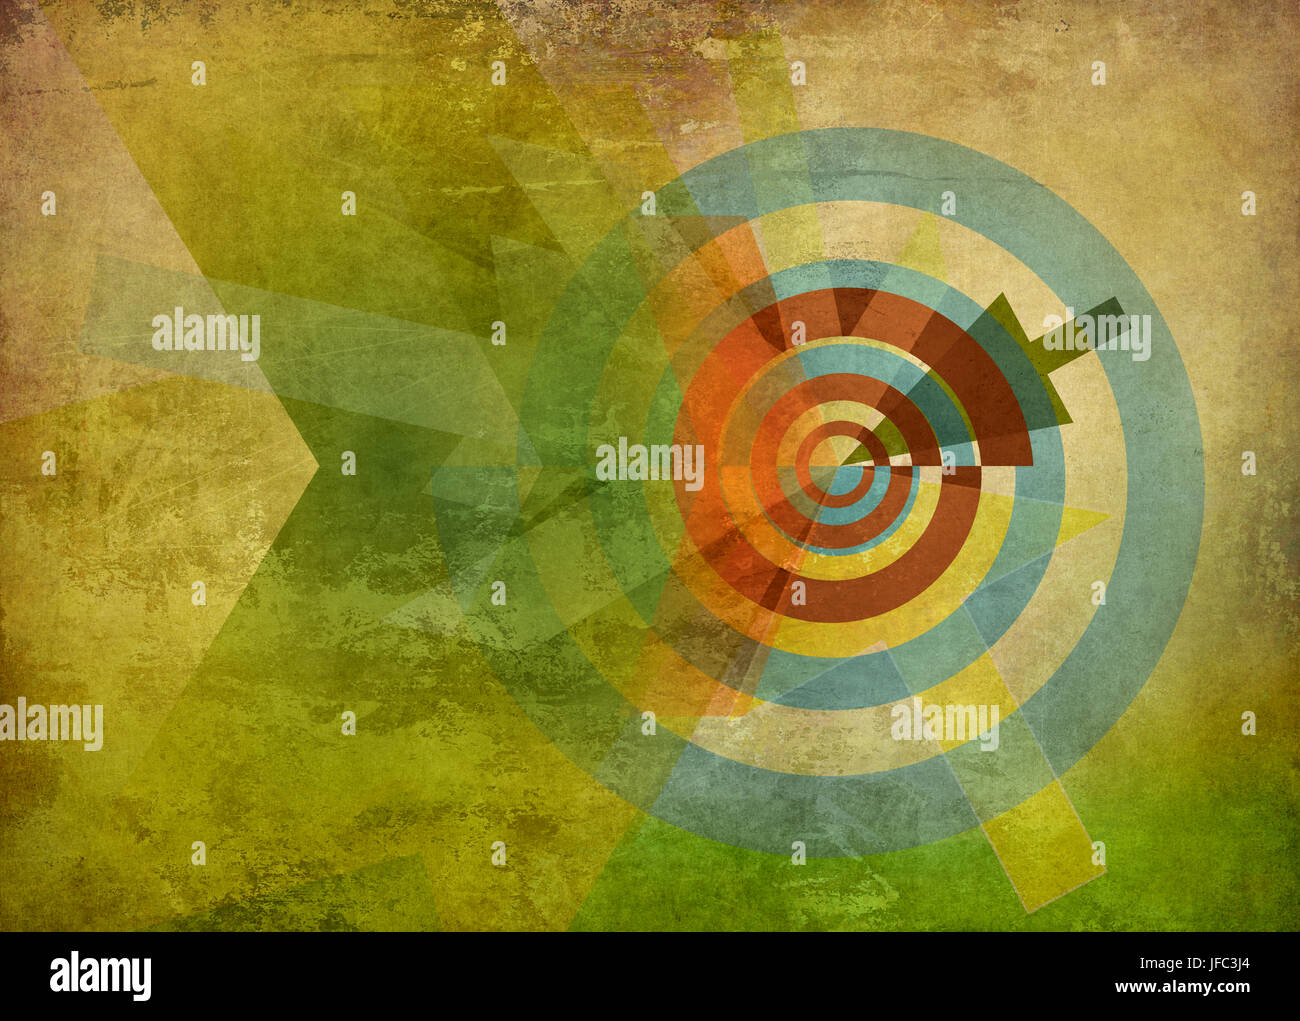 abstract target concept background - Stock Image